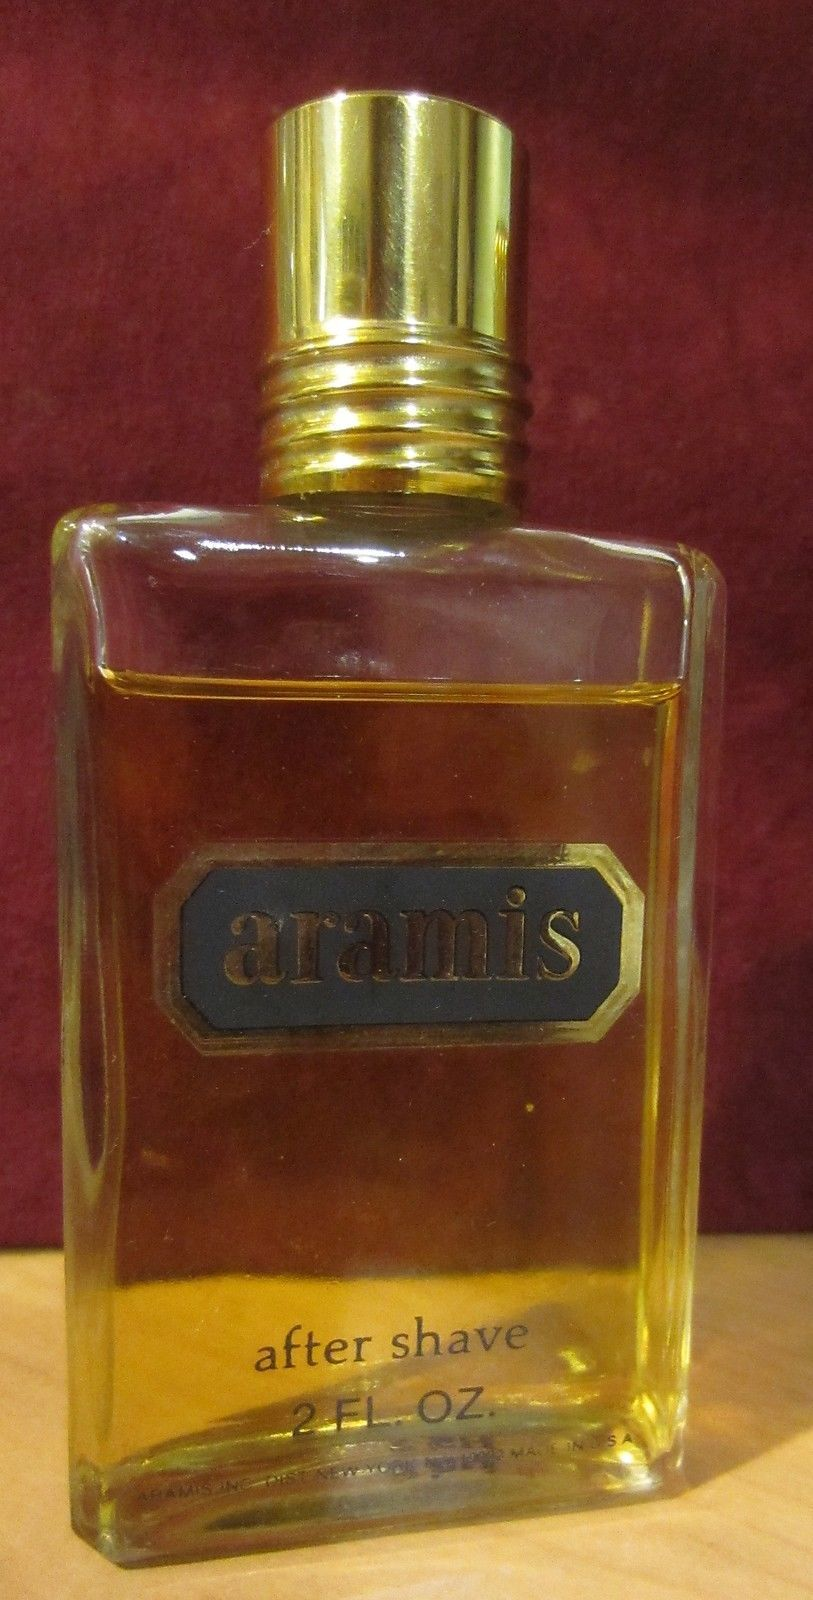 VINTAGE ARAMIS AFTER SHAVE 2 OZ